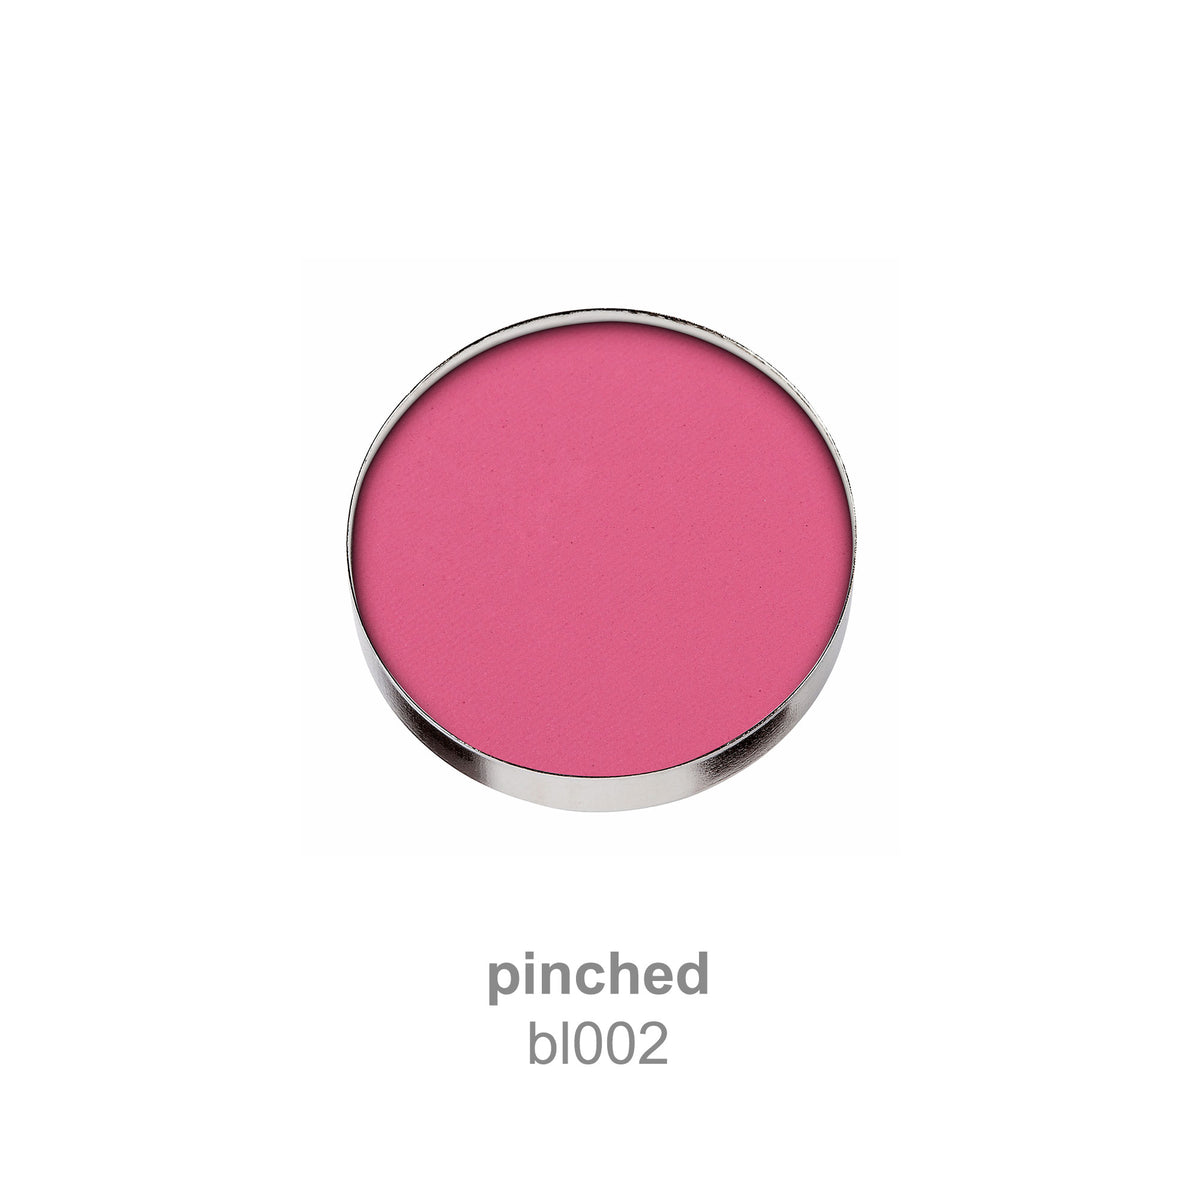 pinched bl002